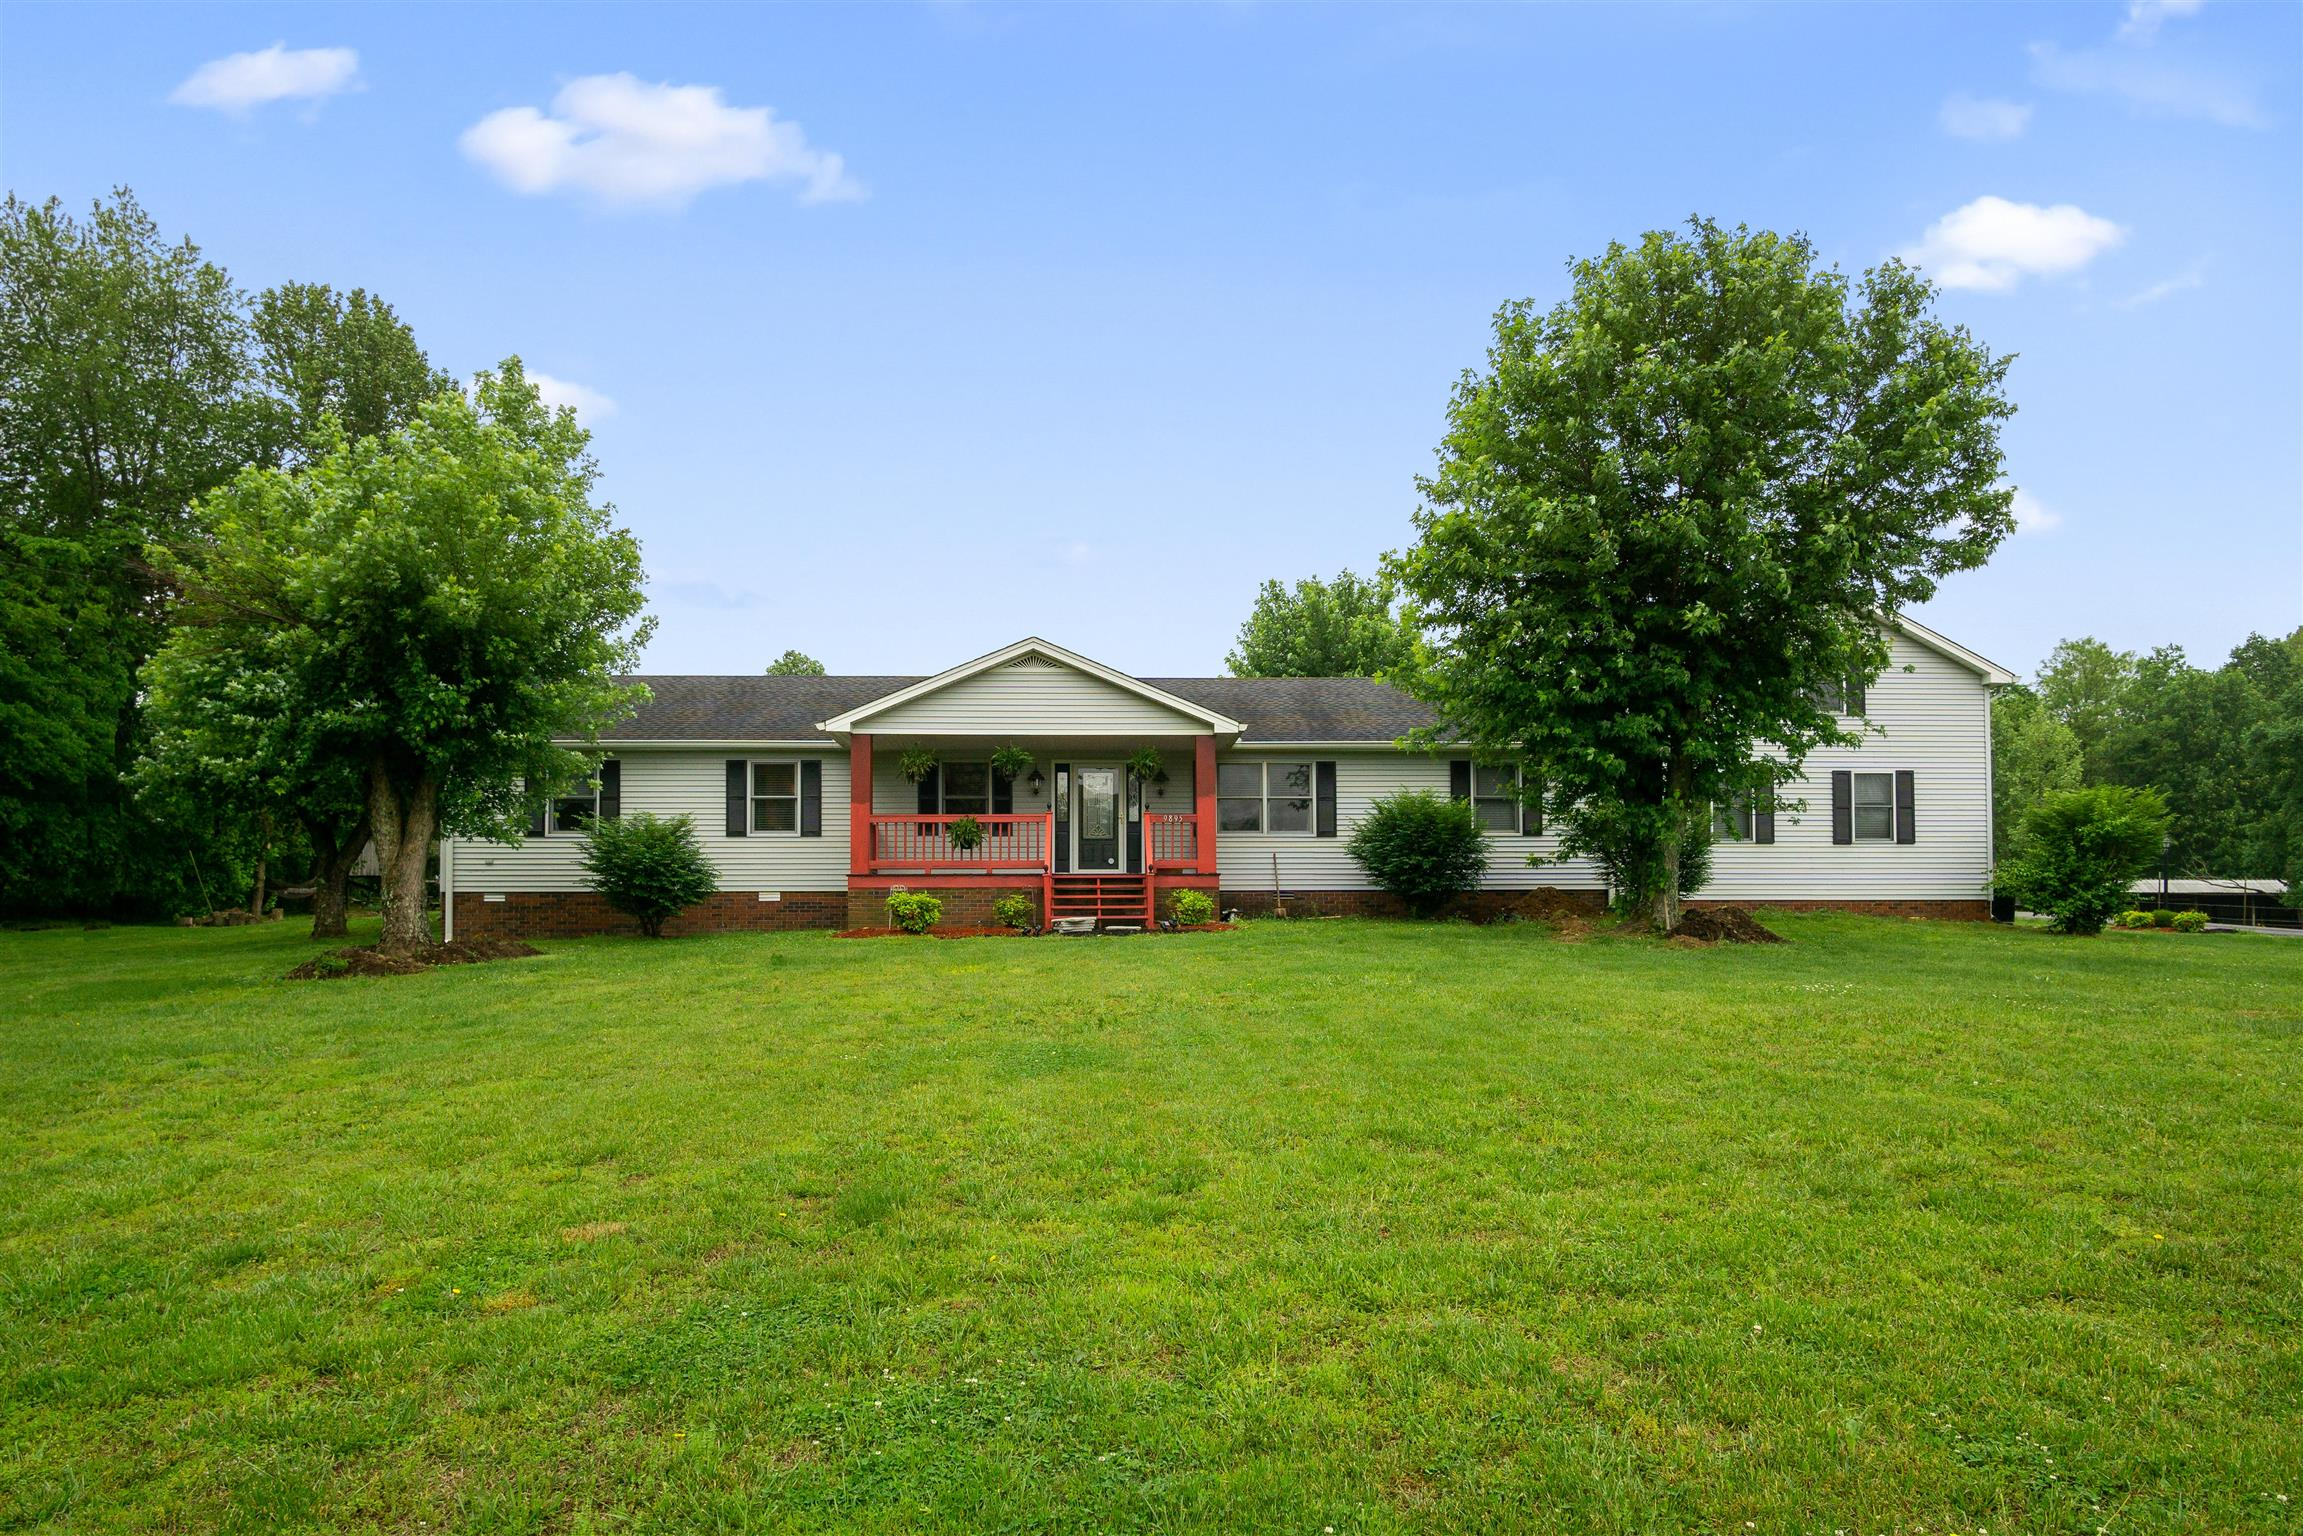 9895 Old Highway 52, Westmoreland, TN 37186 - Westmoreland, TN real estate listing